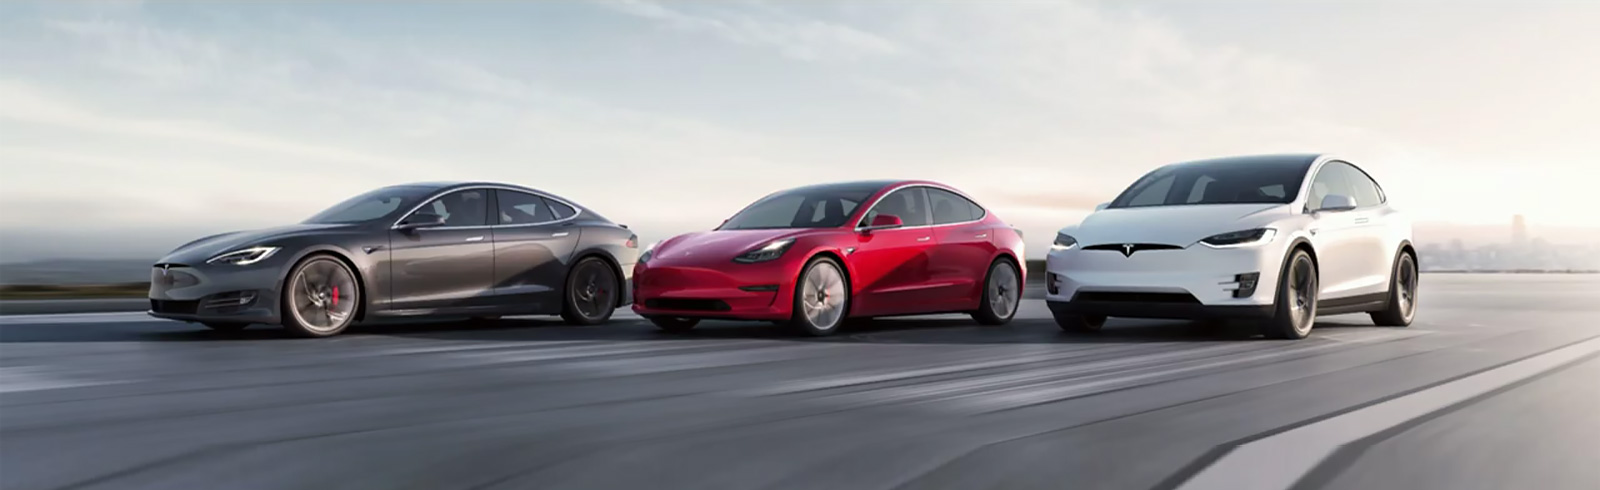 Tesla will be capable to offer a vehicle with a 400-mile range